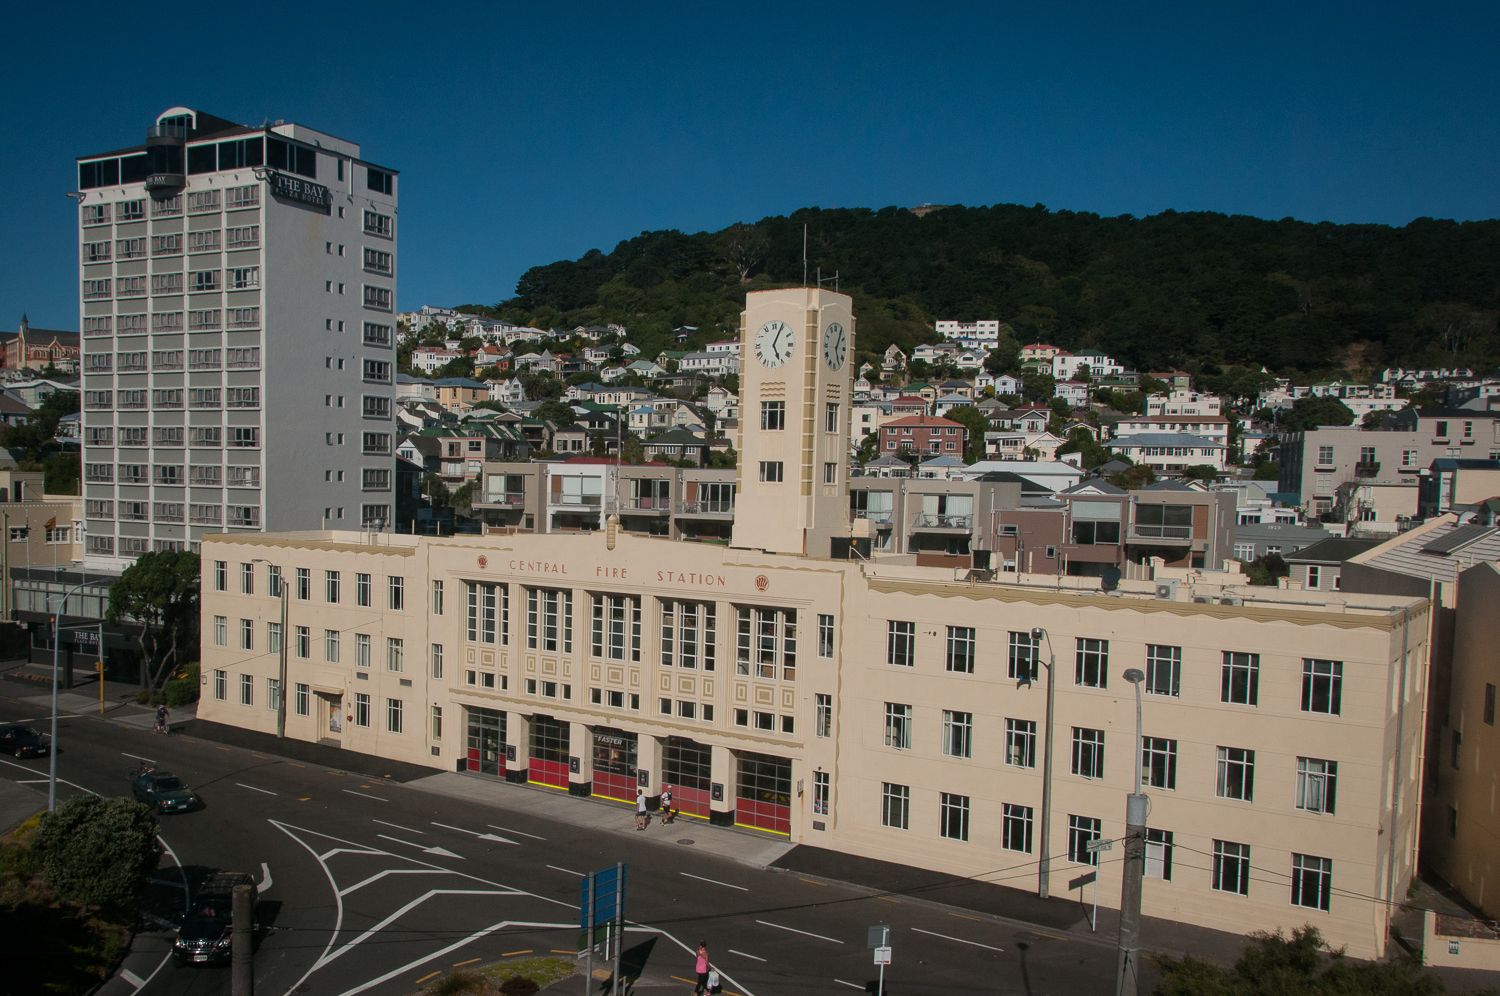 Central Fire Station Wellington